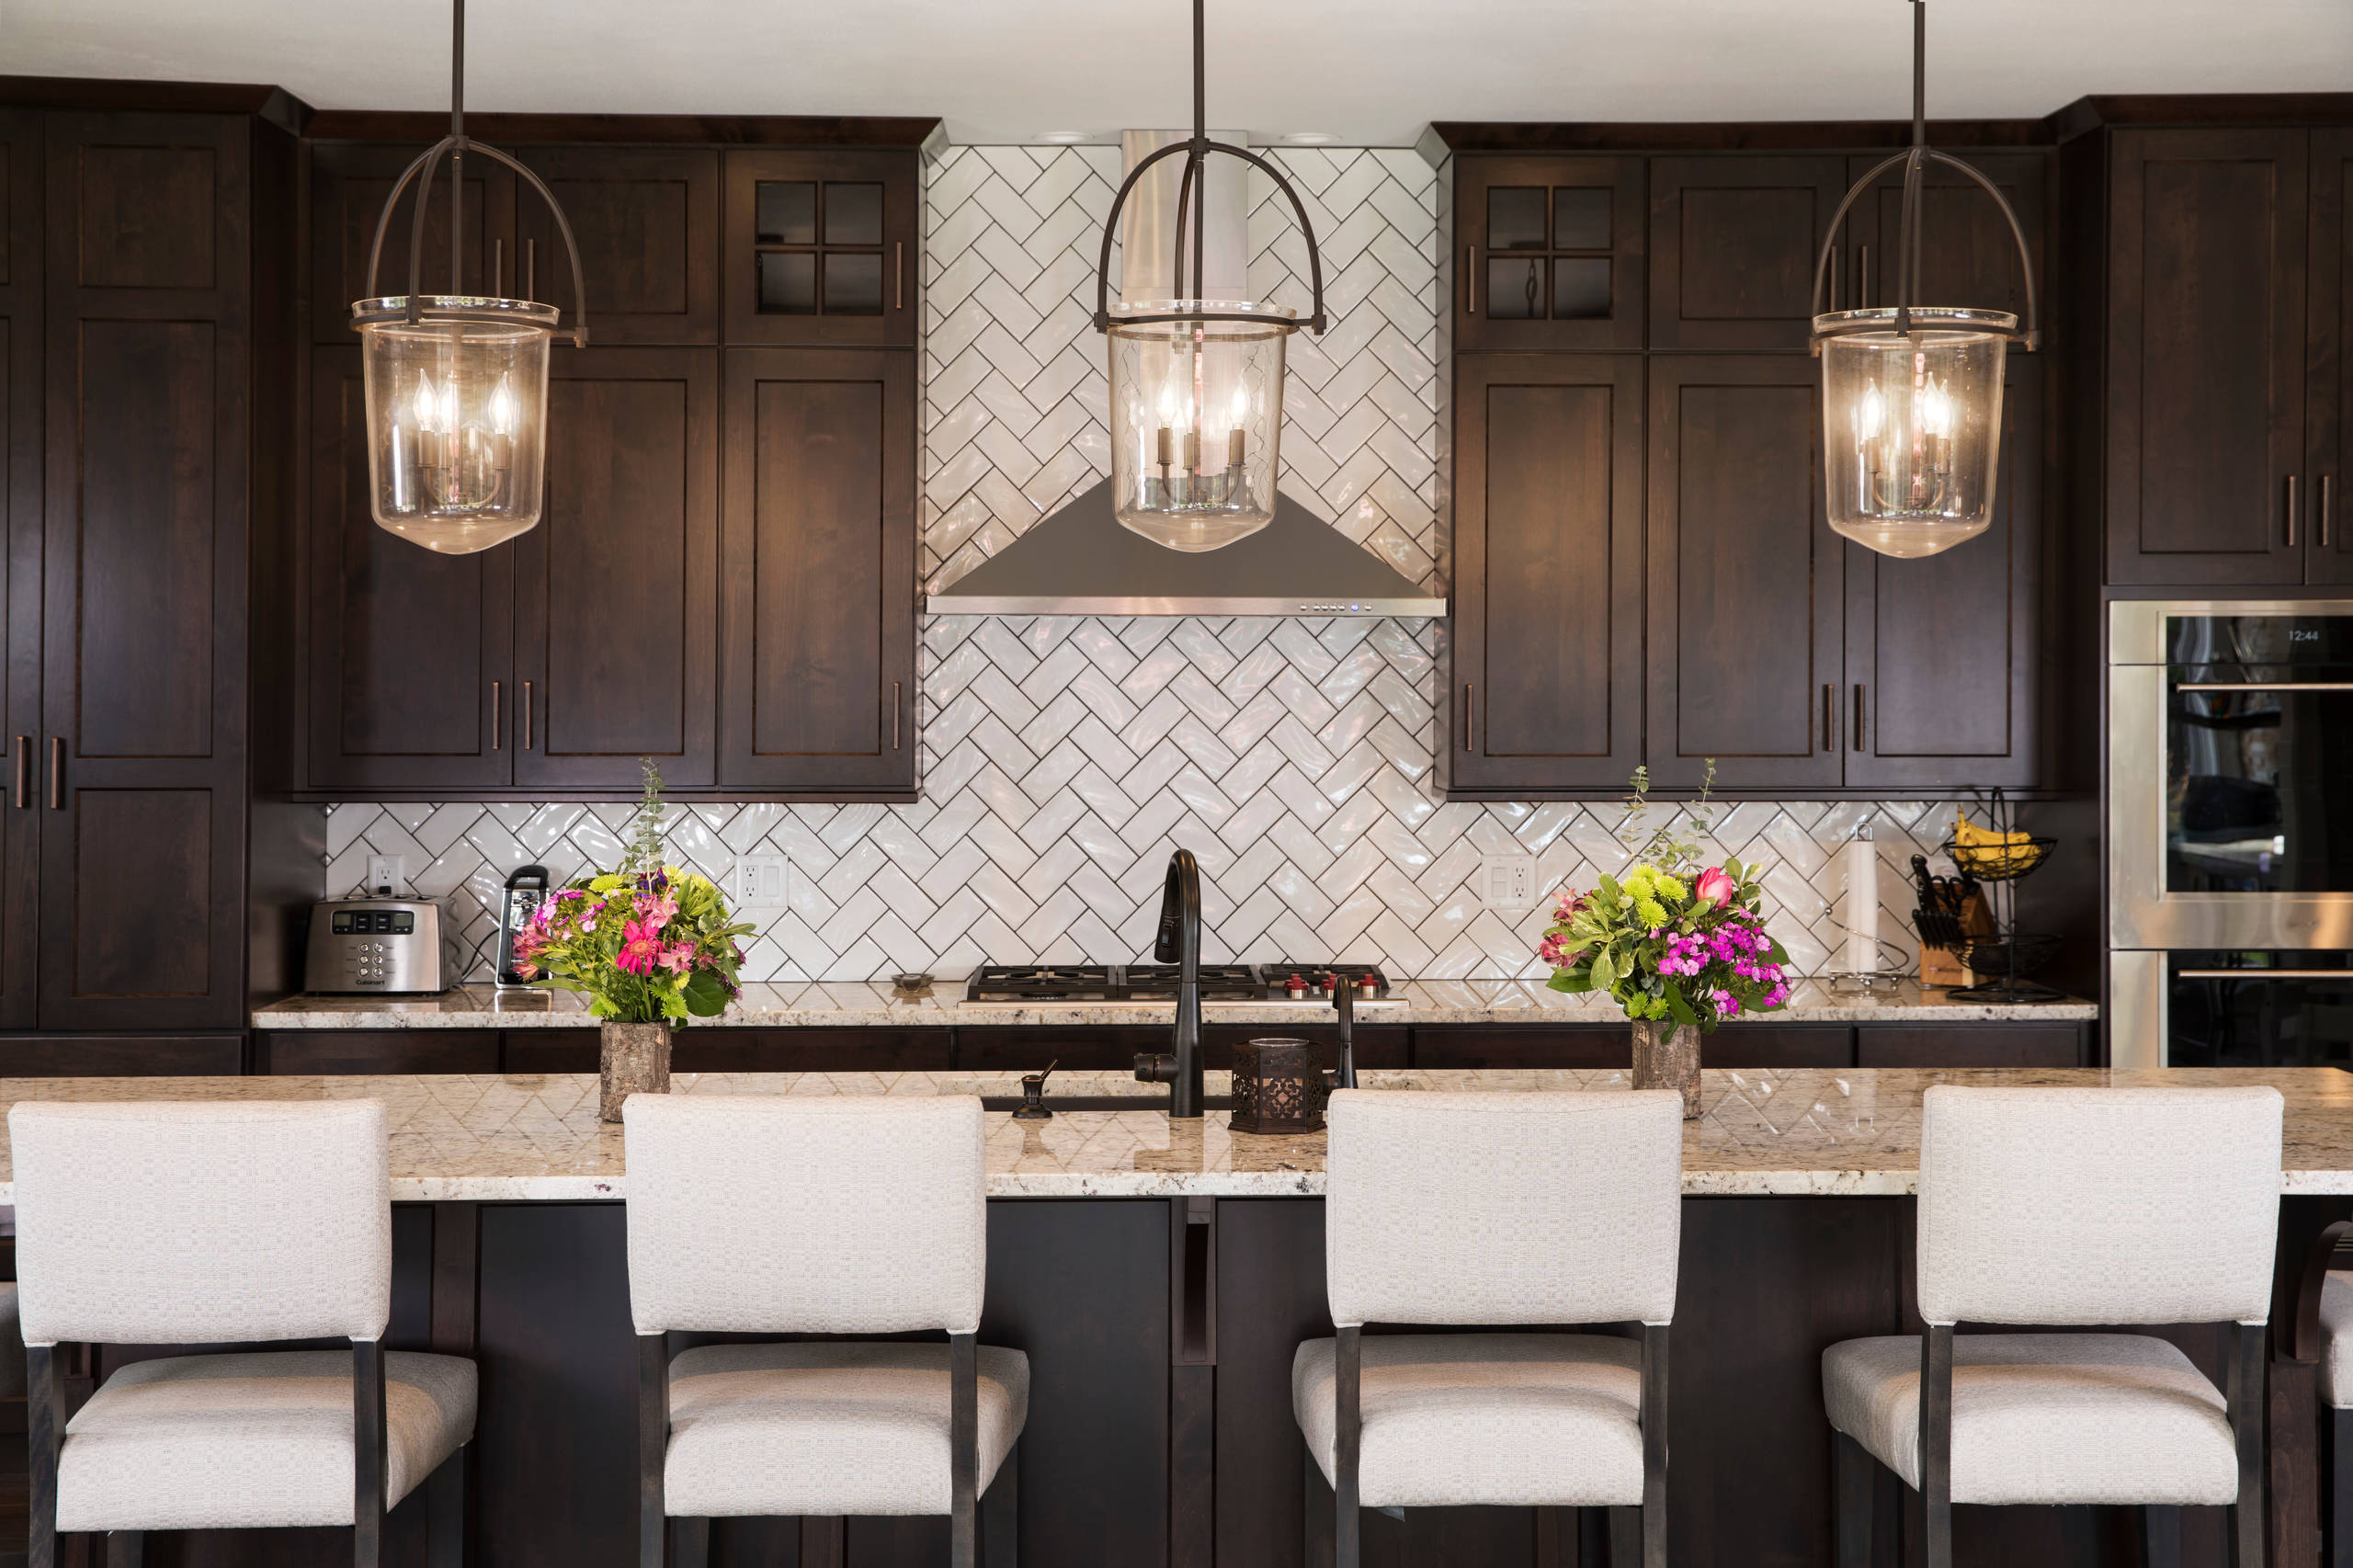 75 Beautiful Kitchen With Dark Wood Cabinets And Subway Tile Backsplash Pictures Ideas November 2020 Houzz